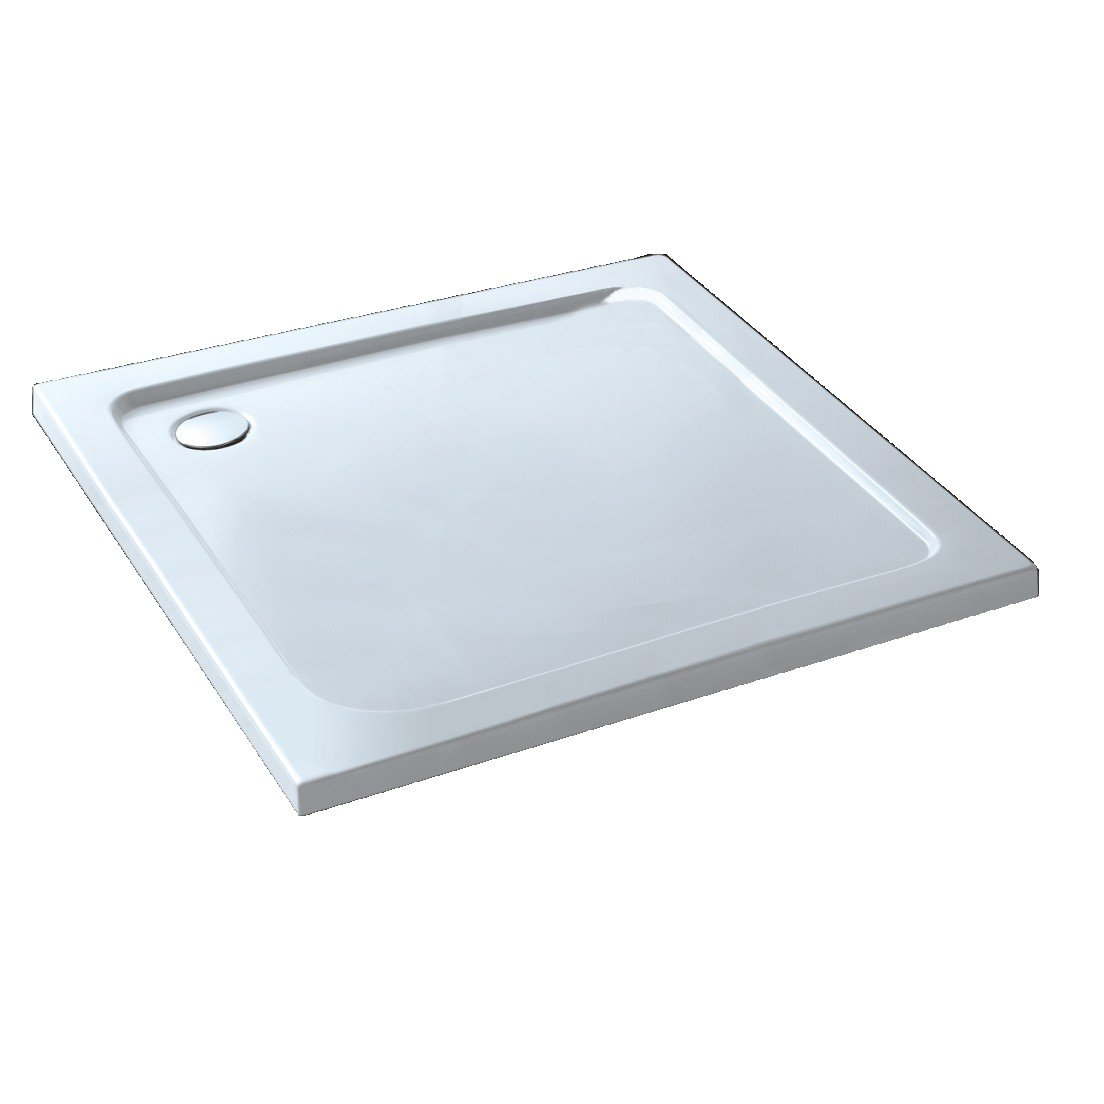 Square 900x900mm Stone Shower Enclosure Tray  iBath       Customer review and more information